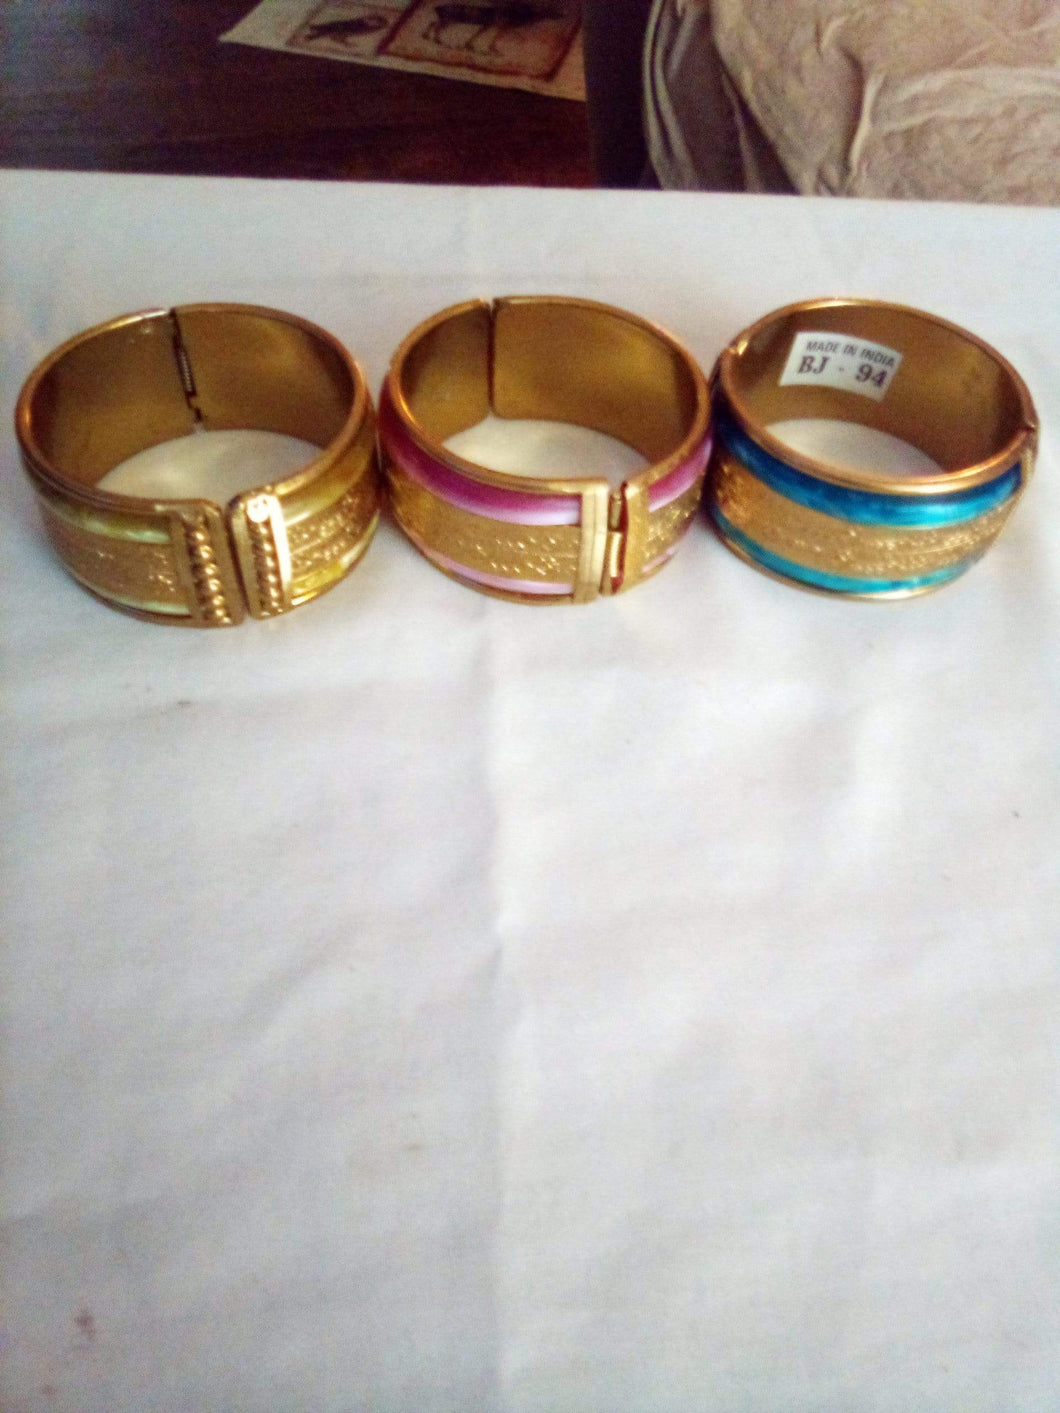 Three made in India bracelets. - B&P'sringsnthings